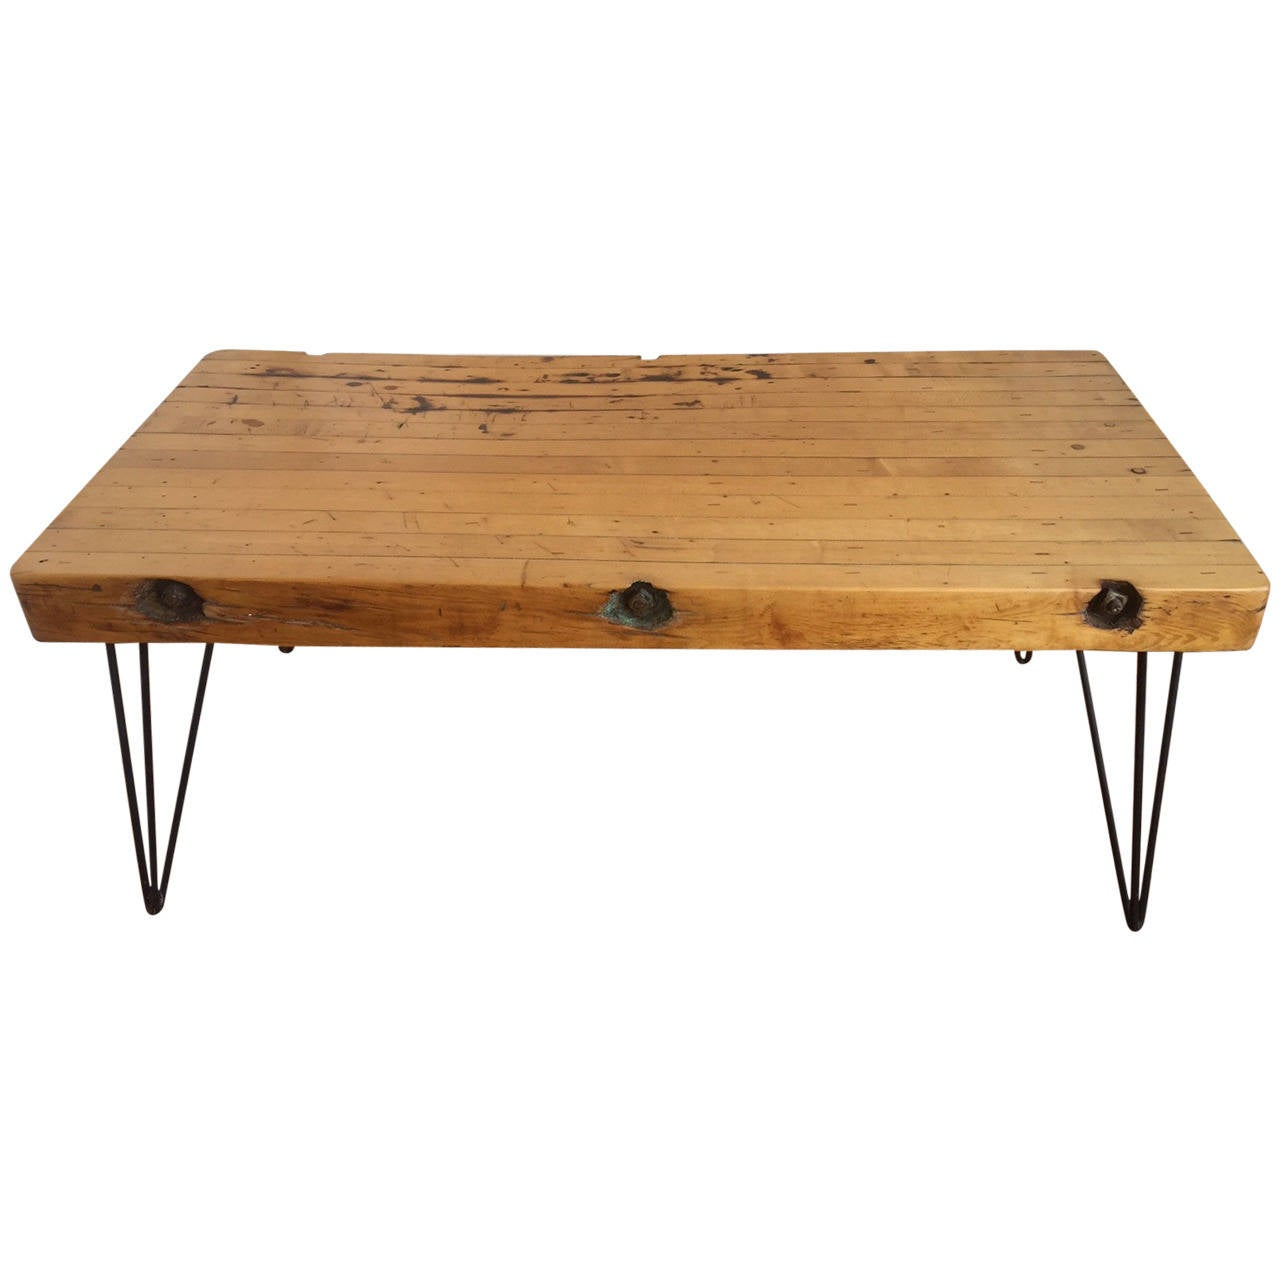 Handmade Reclaimed Butcher Block Rustic Coffee Table At 1stdibs